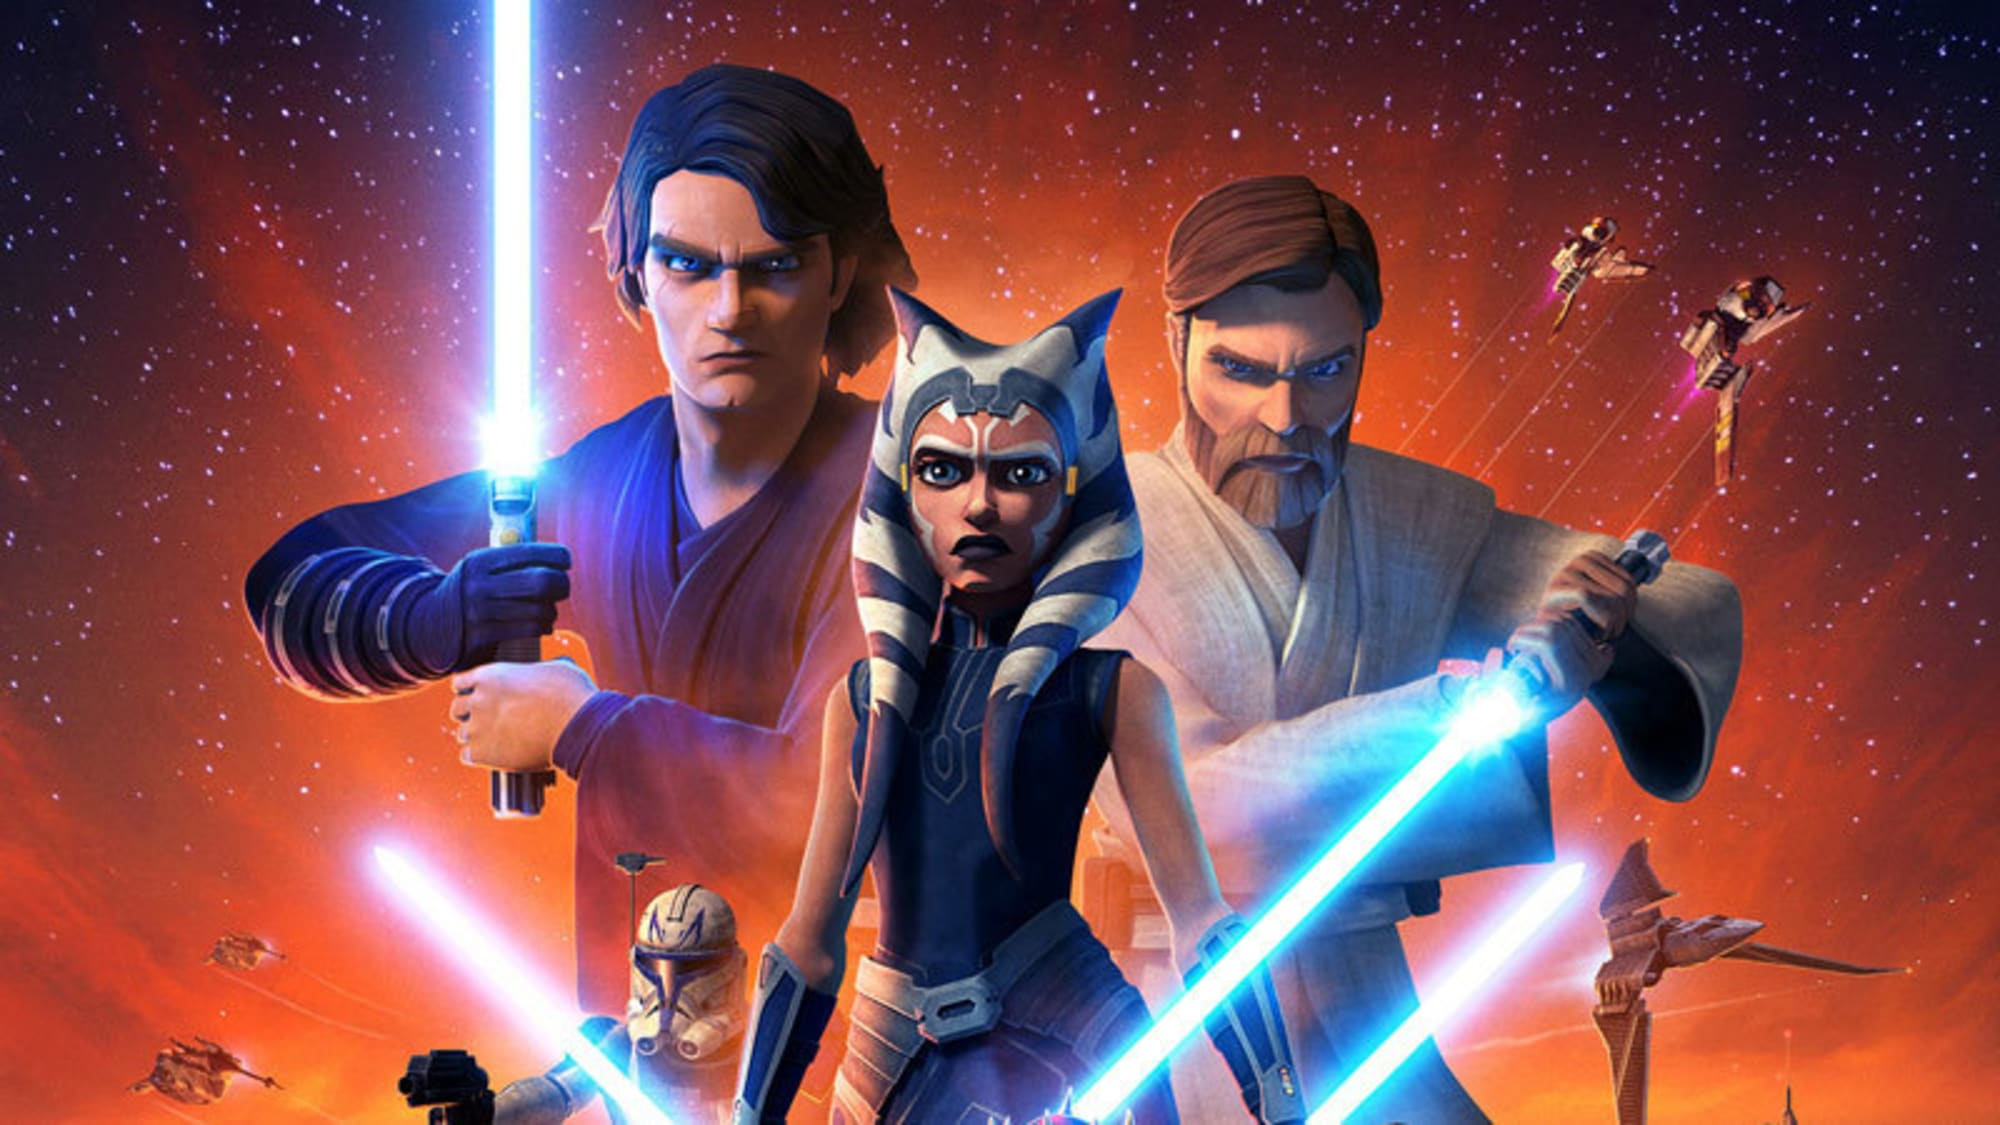 How Will Star Wars The Clone Wars Cross Over With Revenge Of The Sith